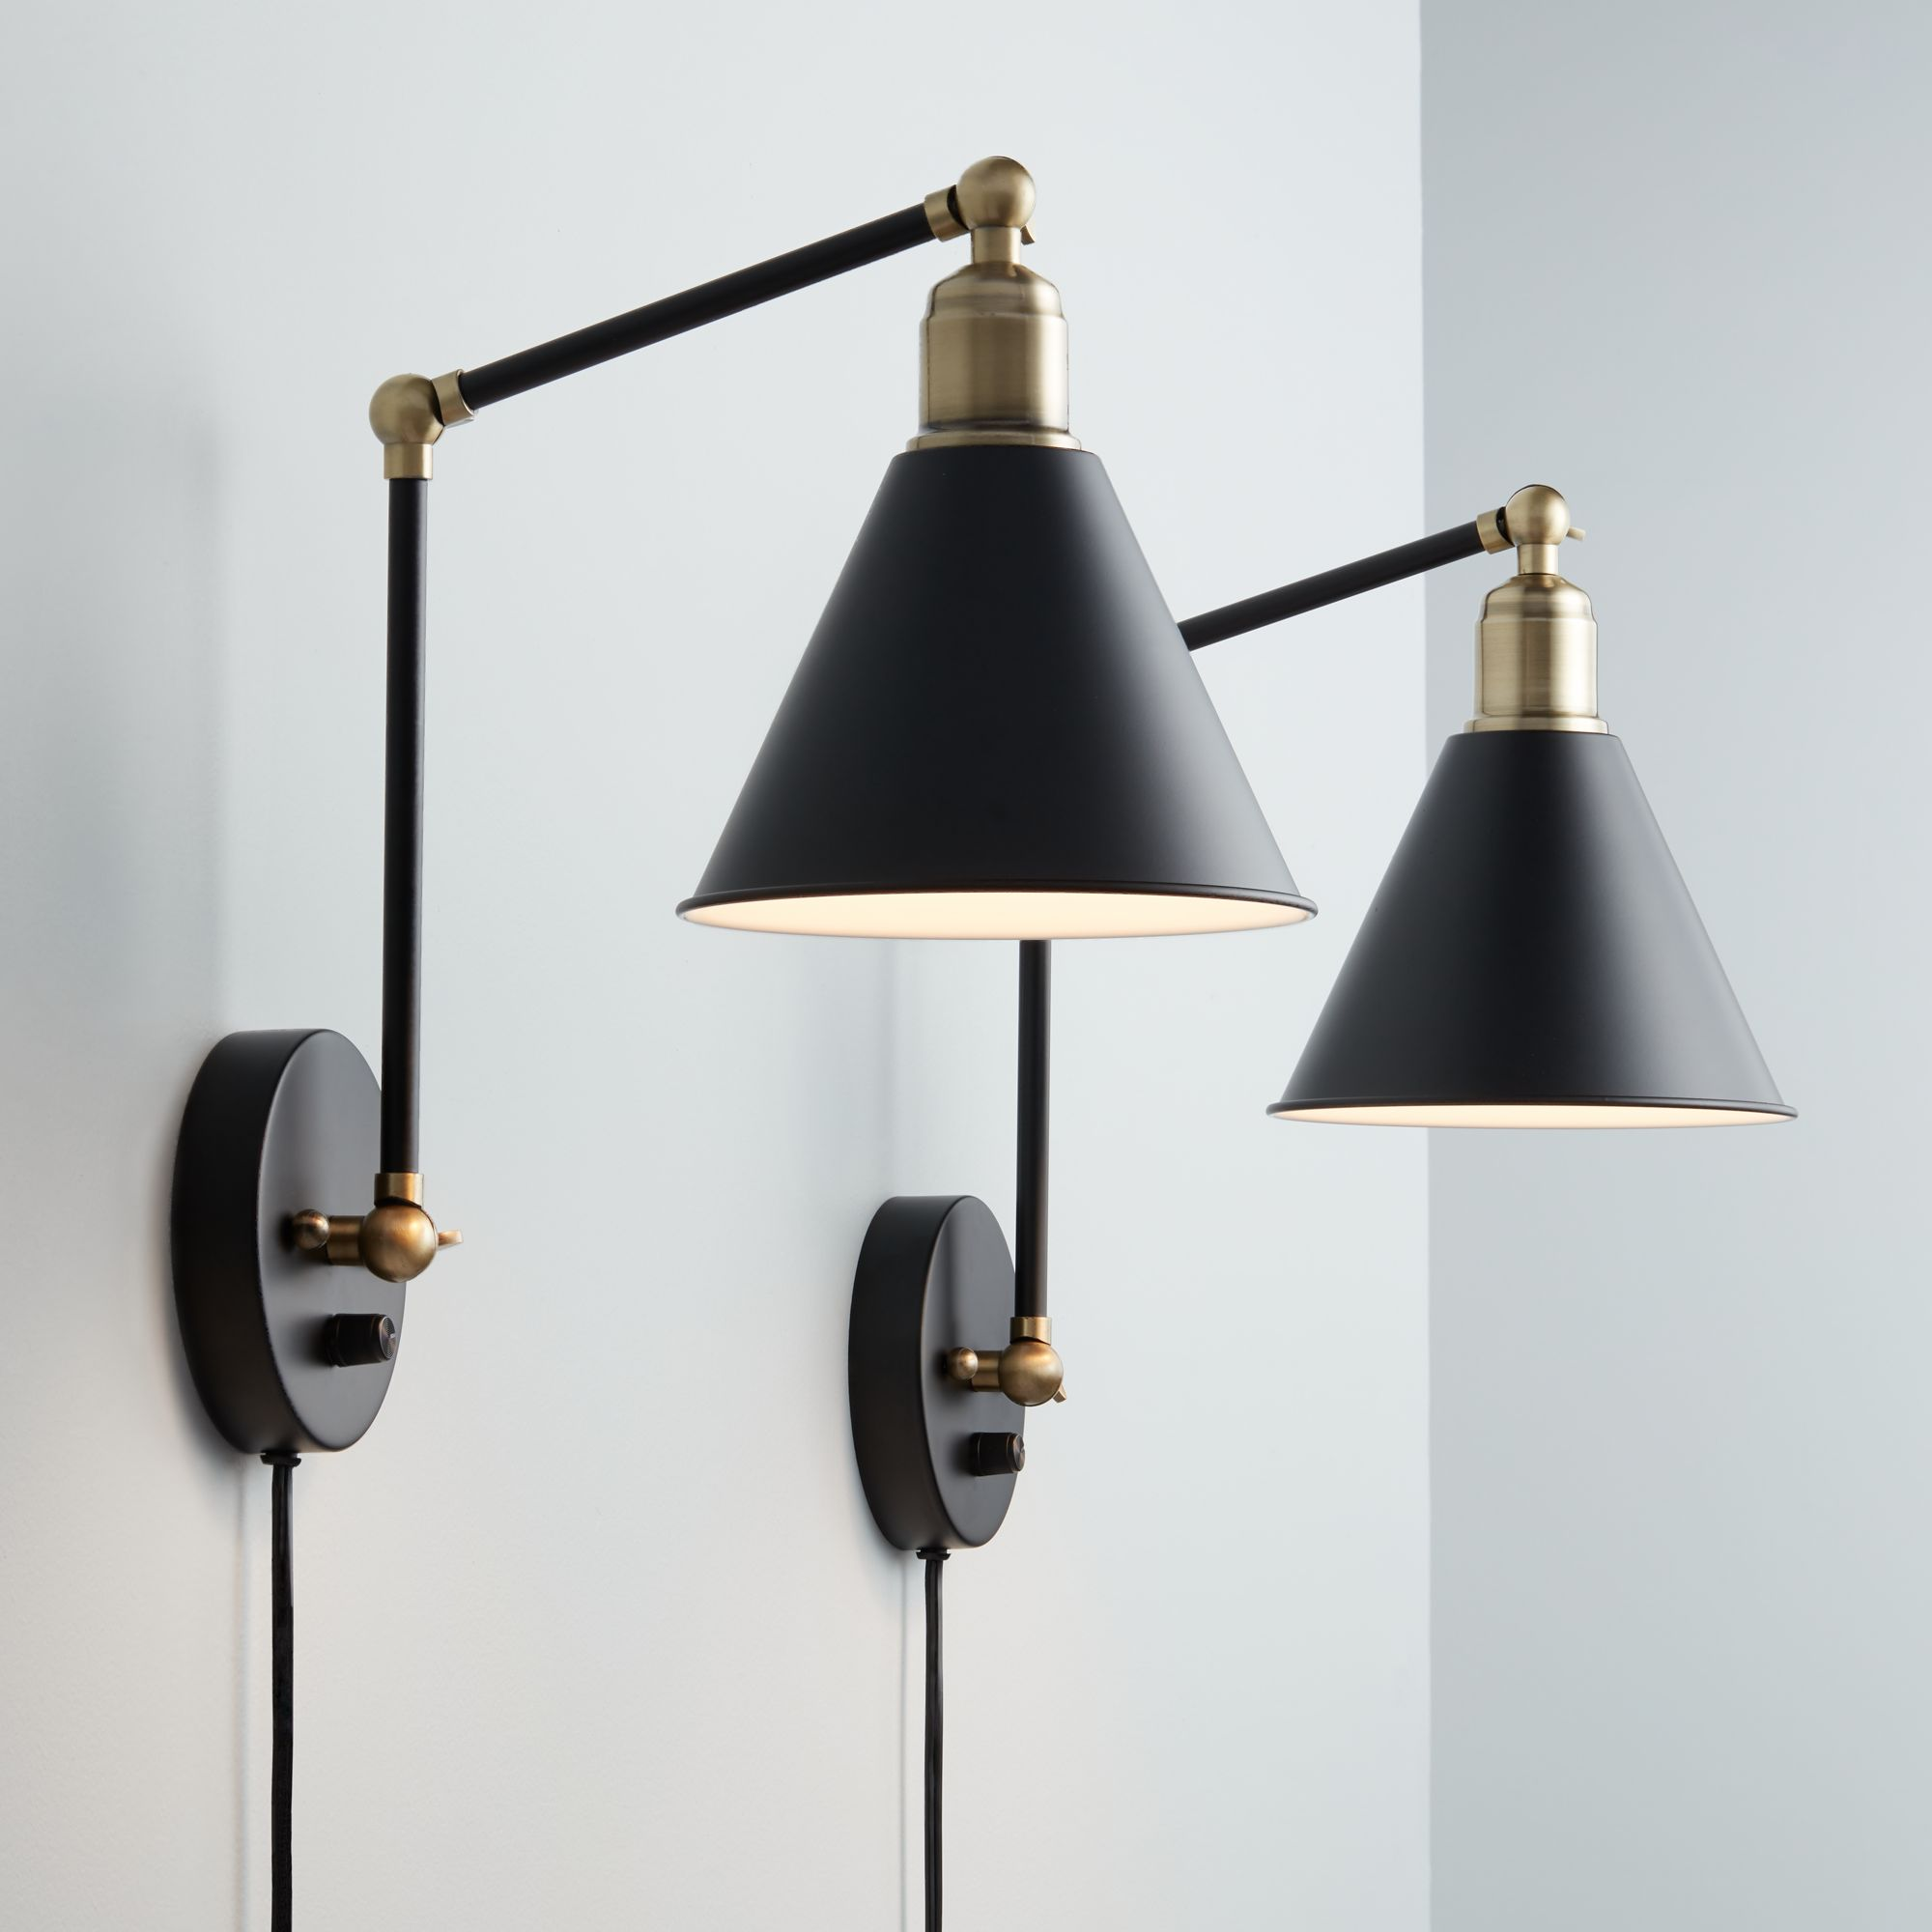 360 Lighting Wray Black And Antique Brass Plug-In Wall Lamp Set Of 2 by 360 Lighting